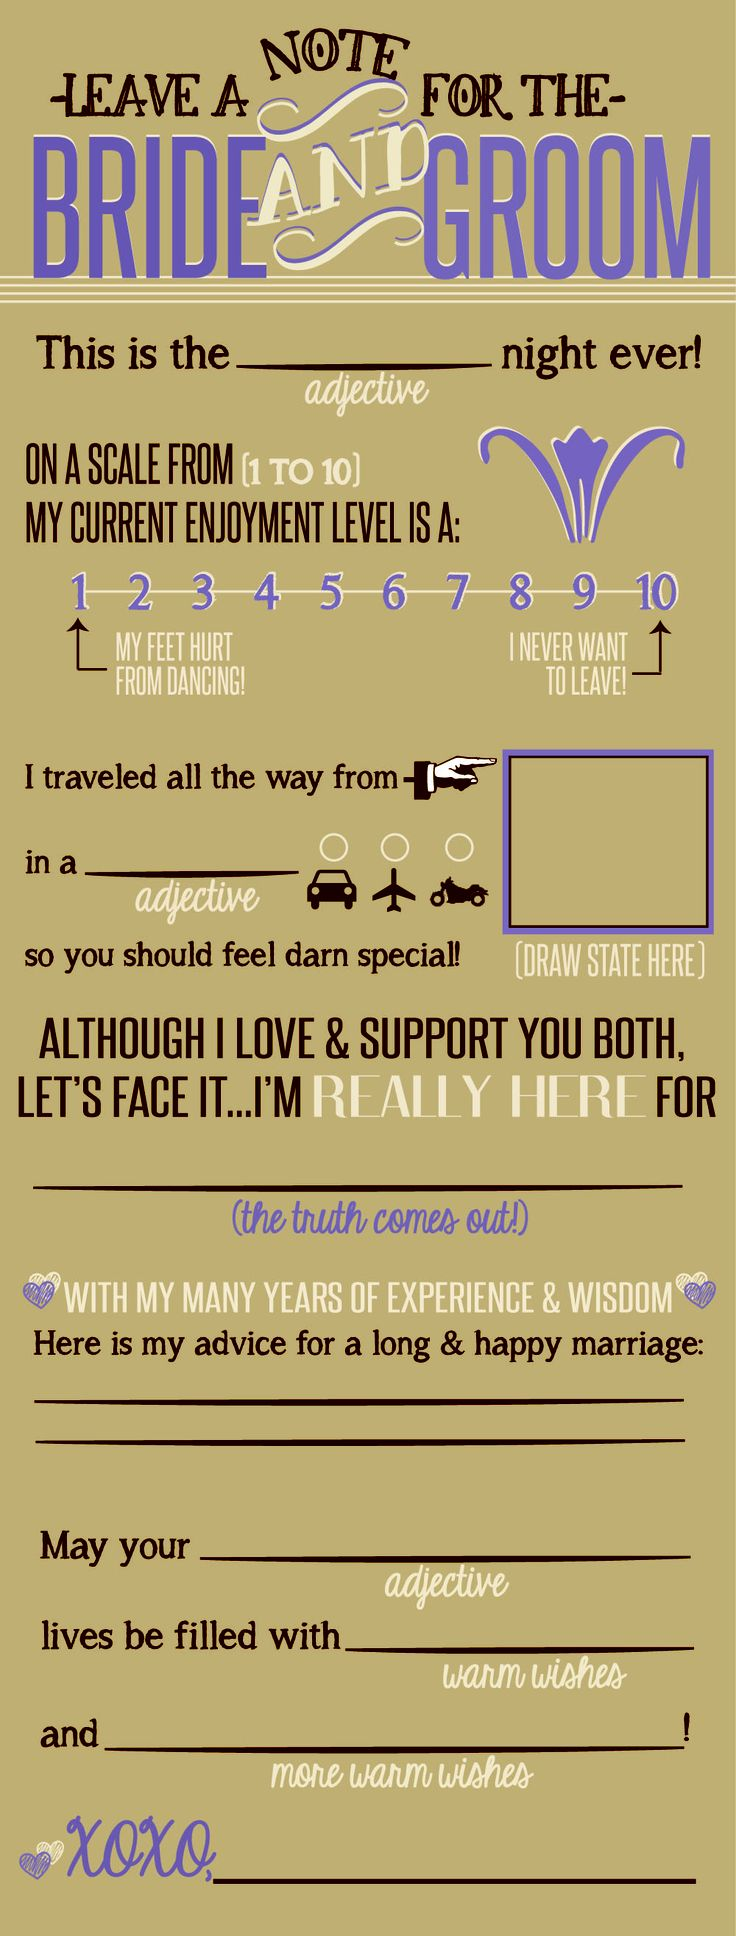 Bride and Groom Note that the guests fill out while they are waiting for dinner - what a cute idea! Maybe even a replacement for a guest book? Perfect for a rustic country wedding - lilac, brown and beige colors :) Print this on kraft paper??